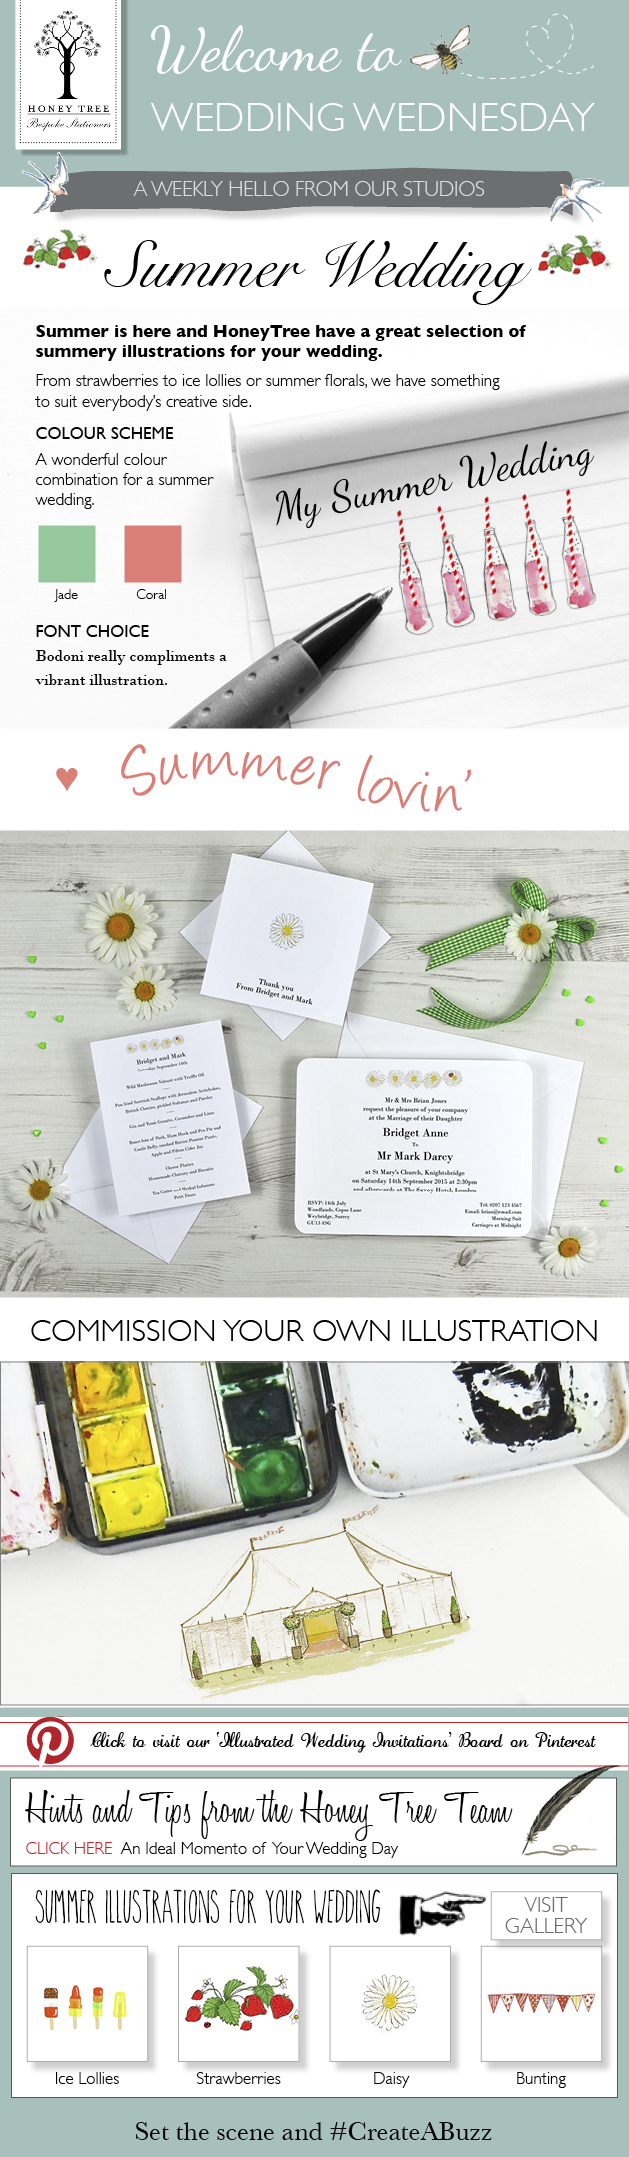 Inspiration for a Summer Wedding from HoneyTree that #CreateABuzz